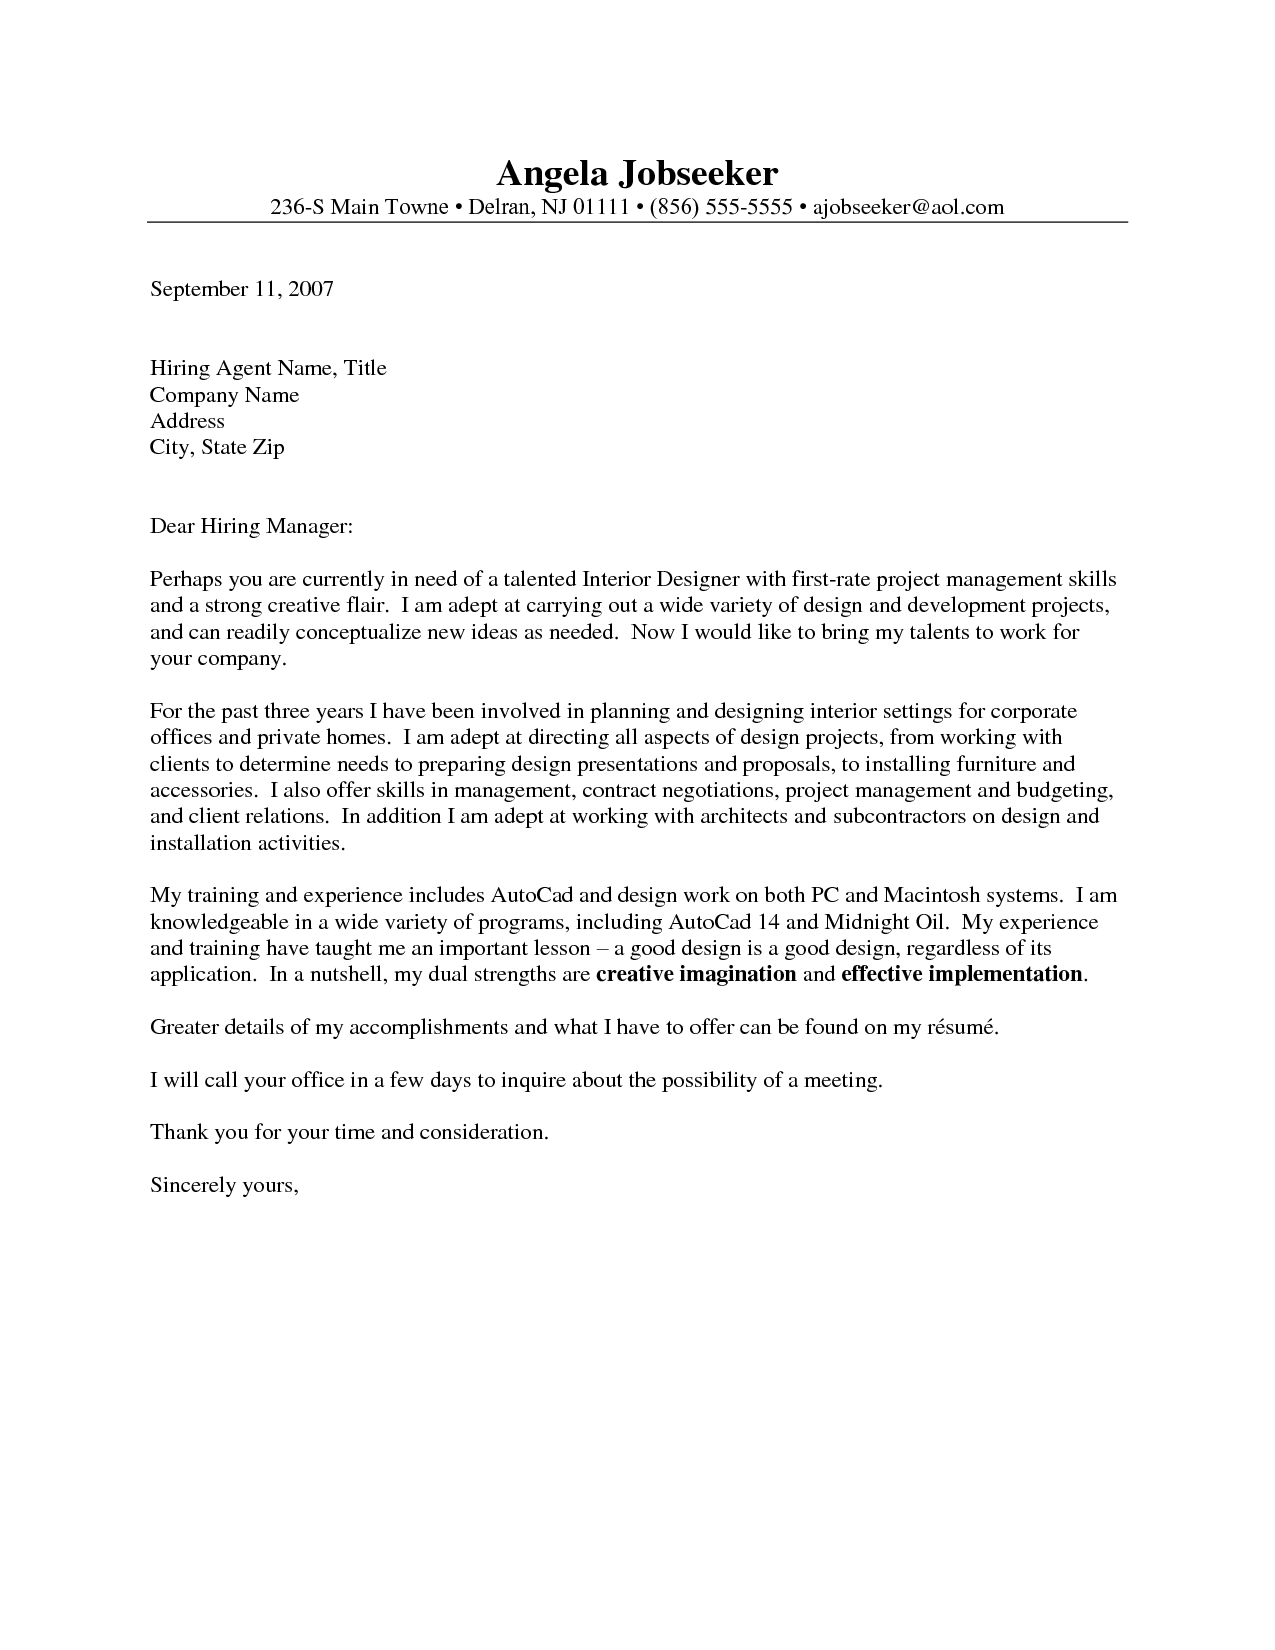 Stop Smoking Letter Template - Outstanding Cover Letter Examples